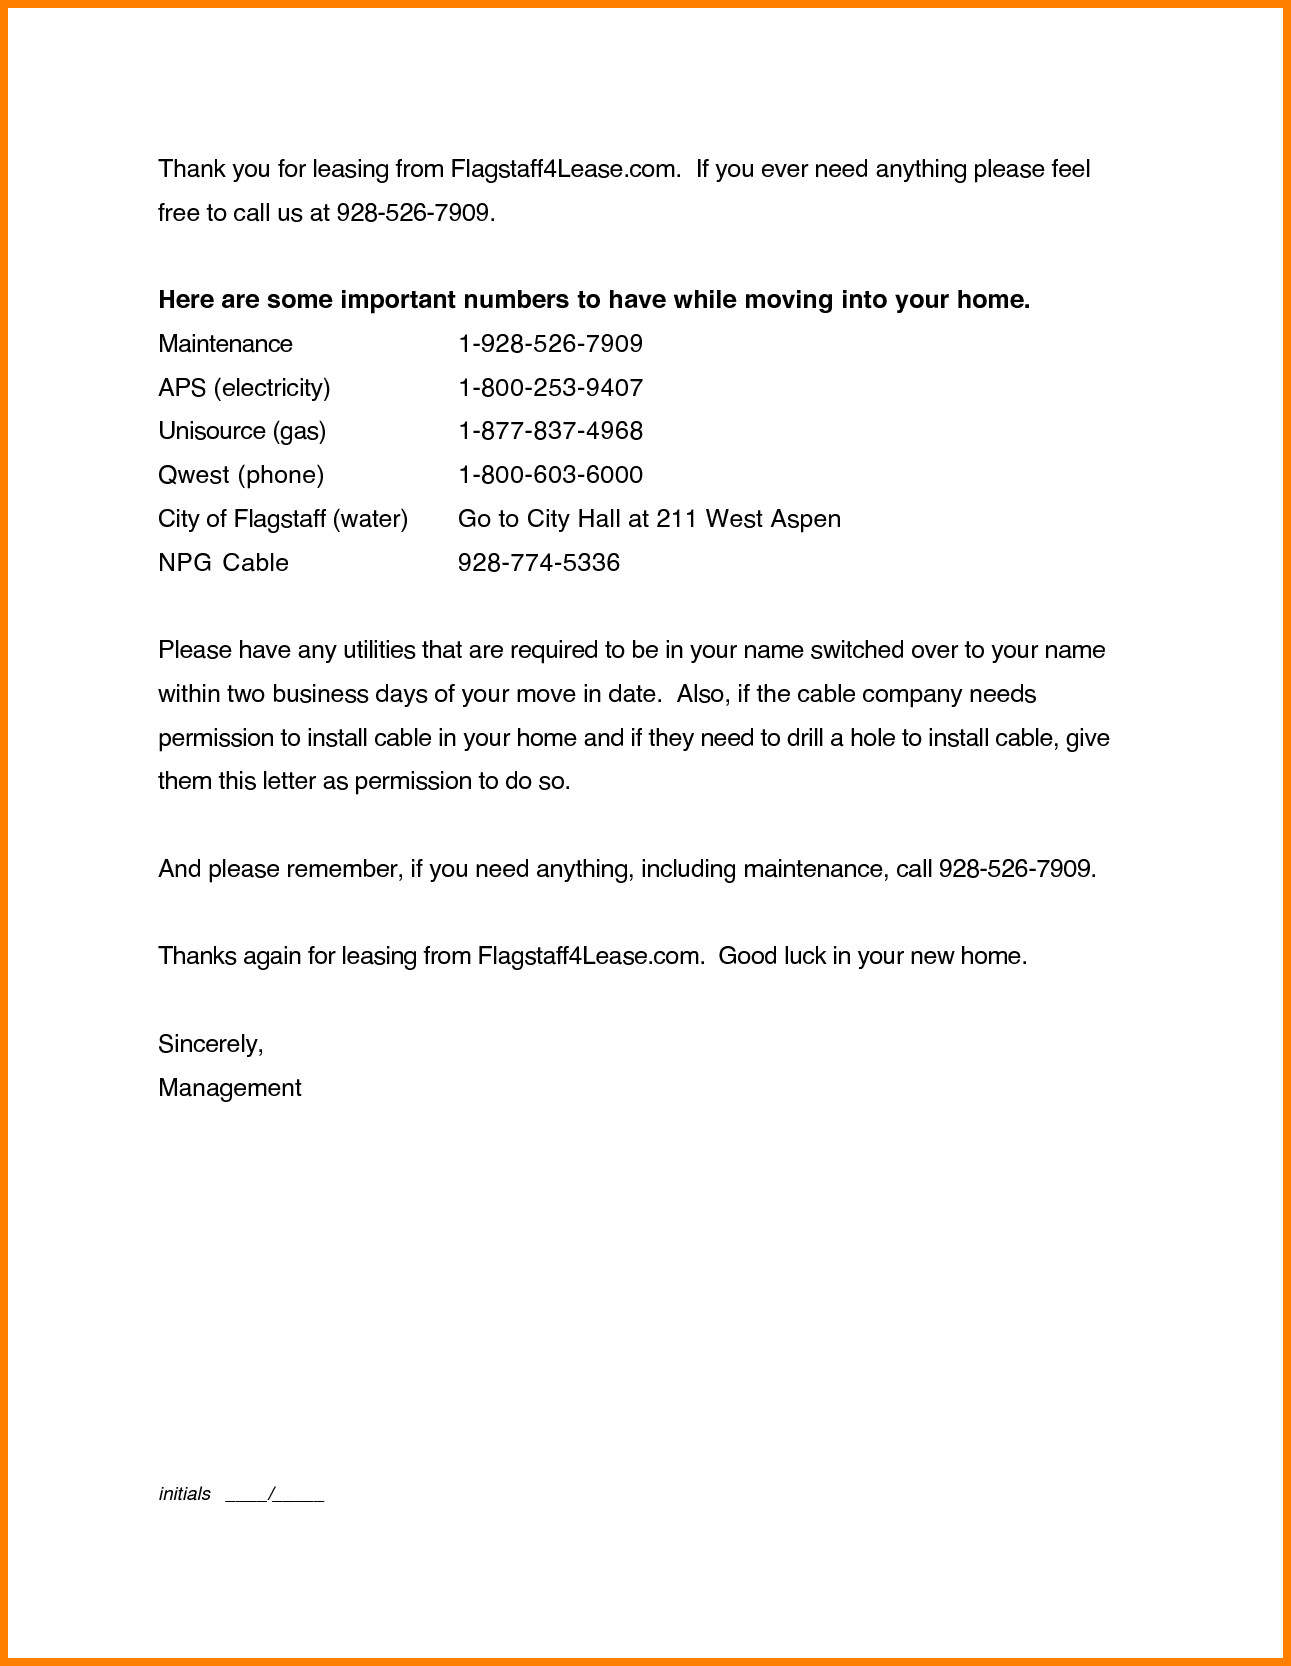 Lease Termination Letter to Tenant Template - Early Lease Termination Letter to Tenant Sample Fresh top Result 50